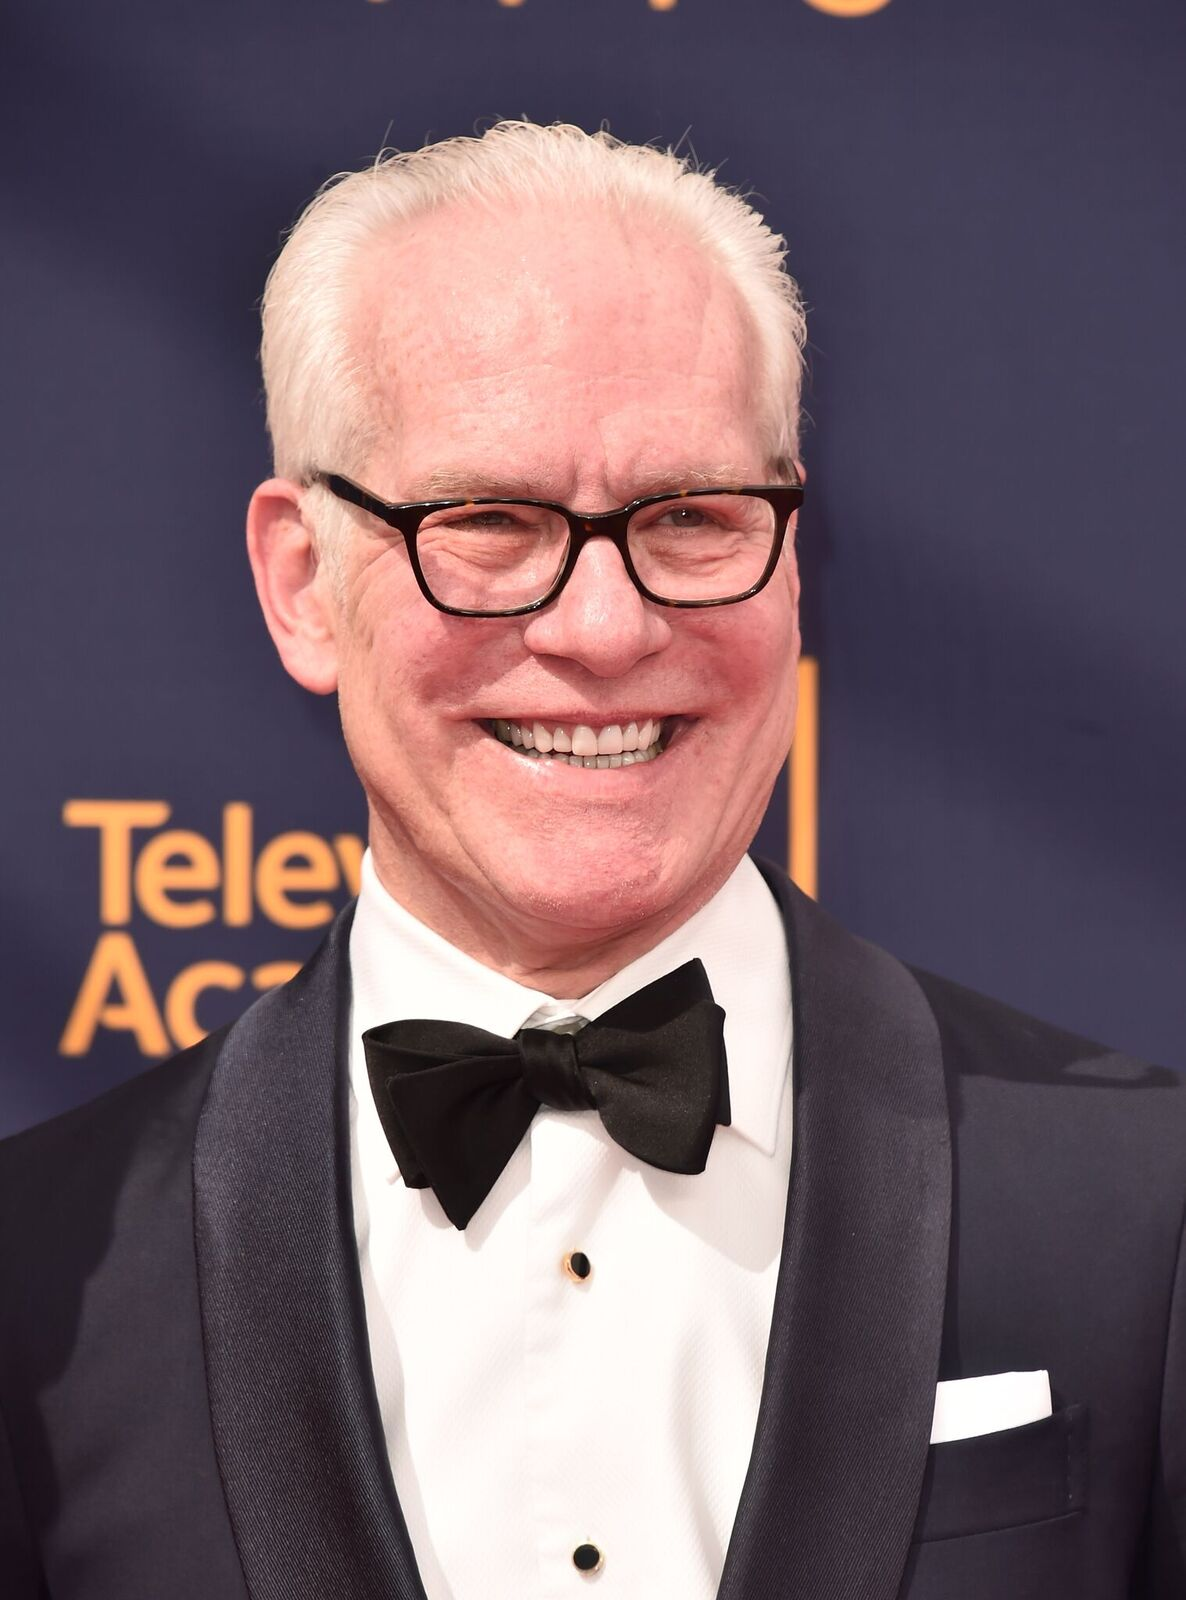 Tim Gunn attends the 2018 Creative Arts Emmys Day 2 in 2018. | Source: Getty Images